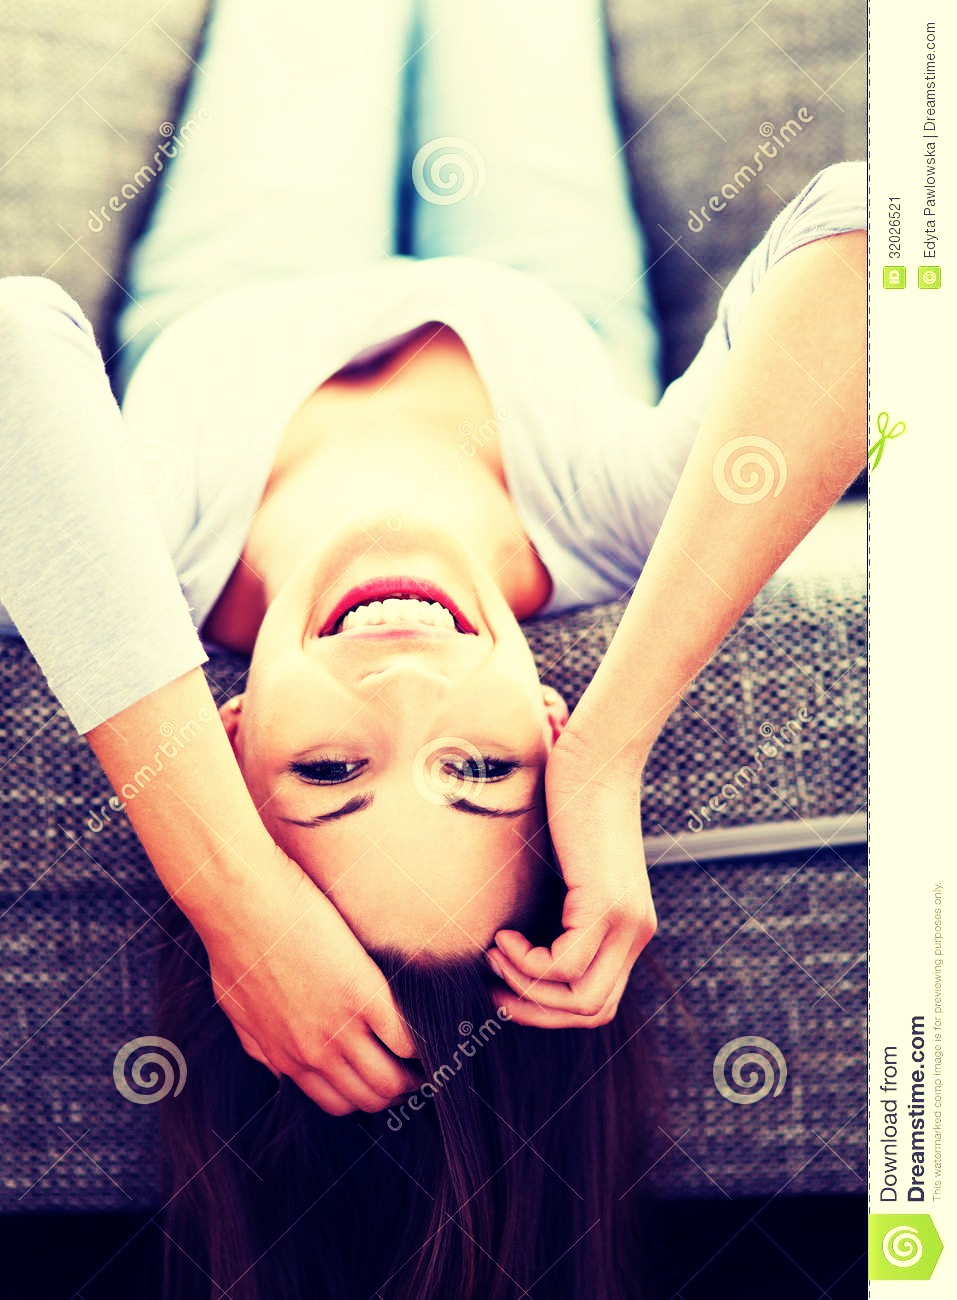 Lie upside down so that your hair is dangling down. (I recommend you do this on your bed) Lie like this for 4 minutes and then slowly rise back up. This will set the ointment in your hair and will also help with growth of your hair.